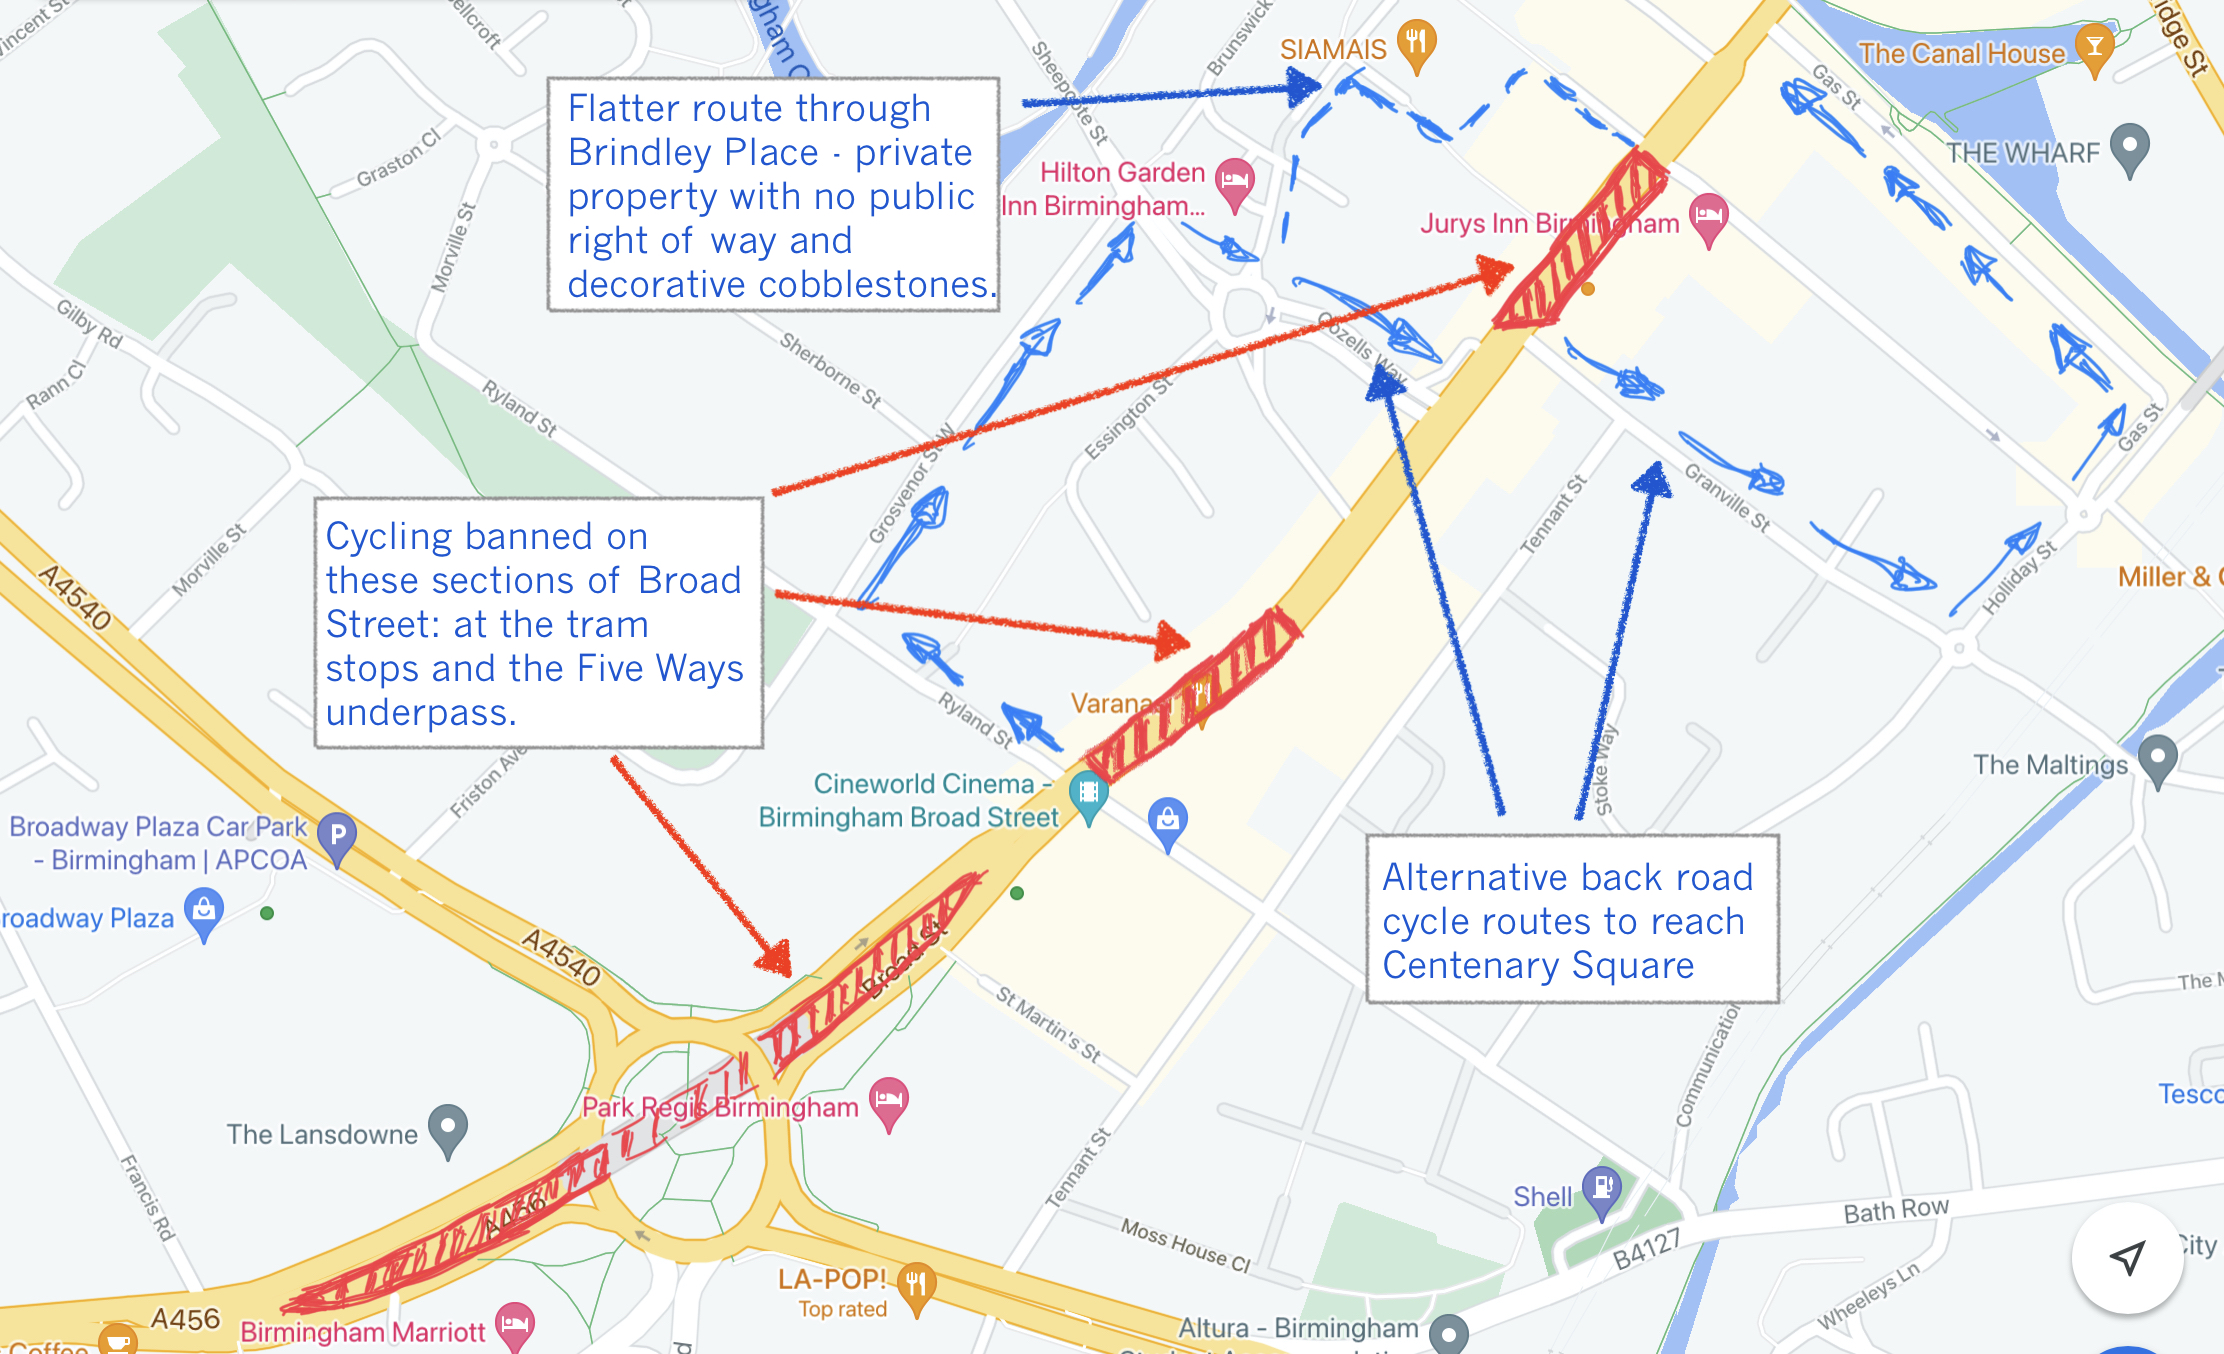 Map showing where BCC propose to ban cycling on Broad Street.